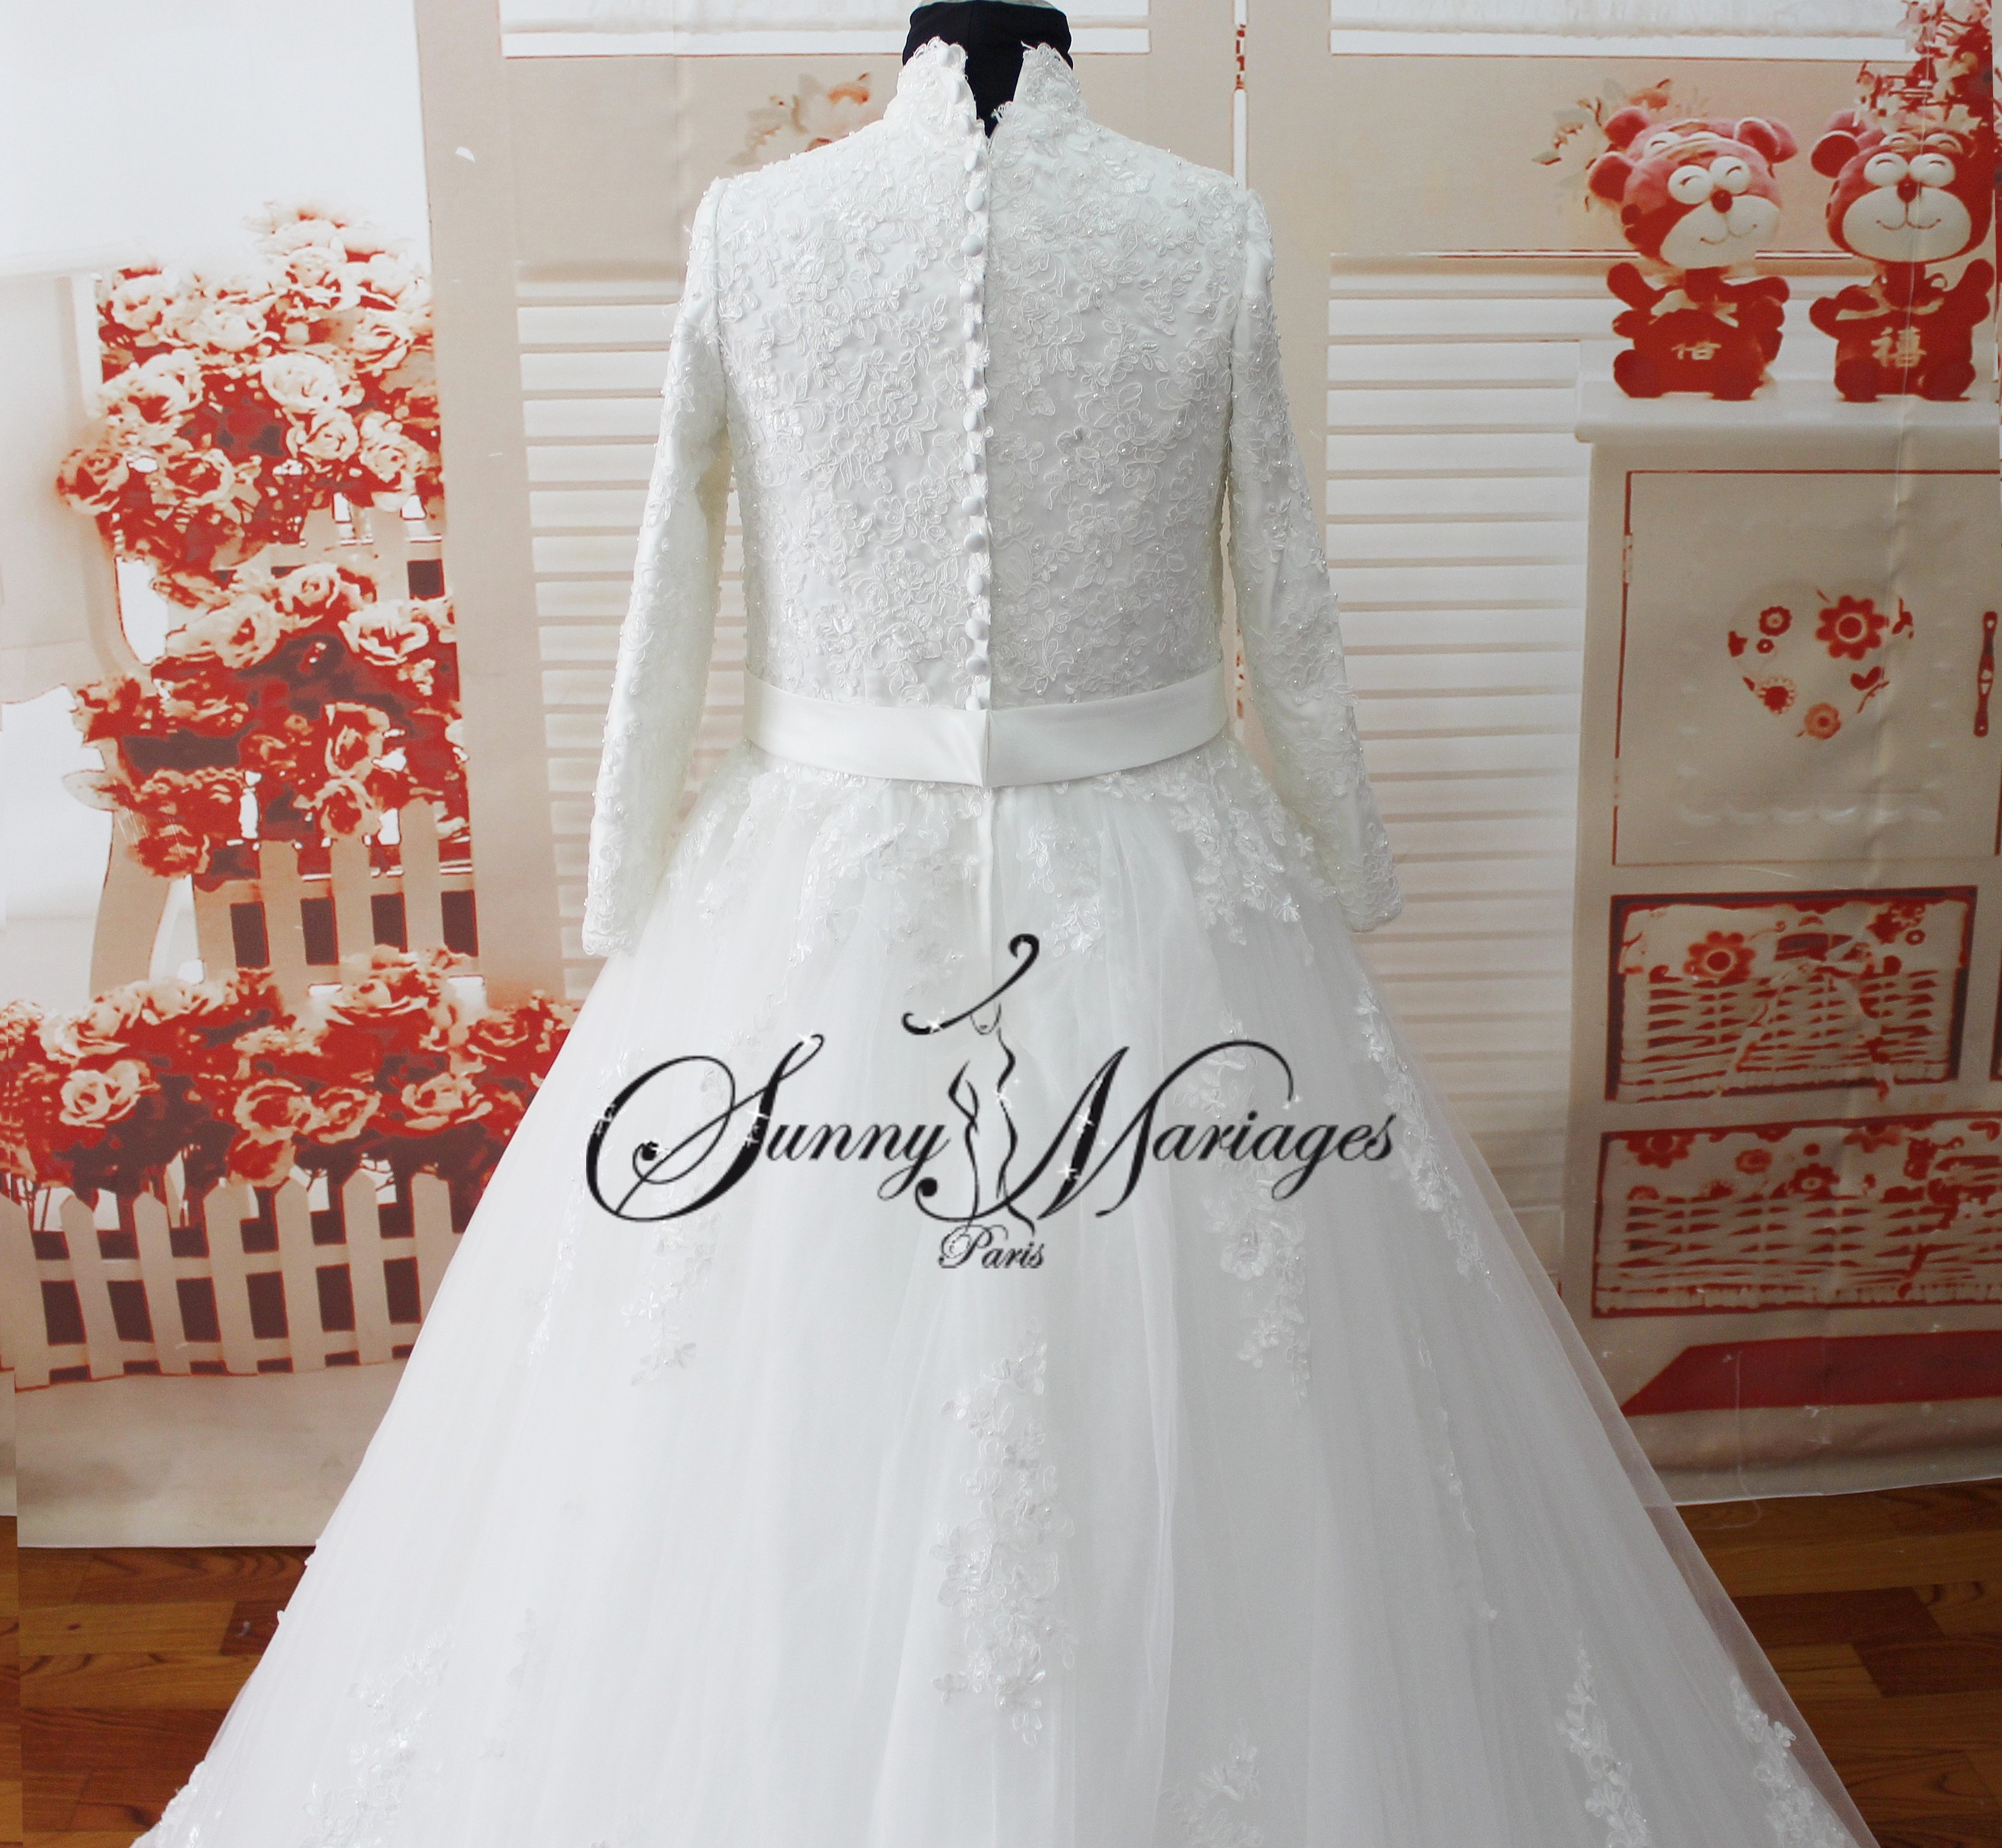 Robe de mariee manches longues sunny mariage - Robe de mariee manche longue dentelle ...